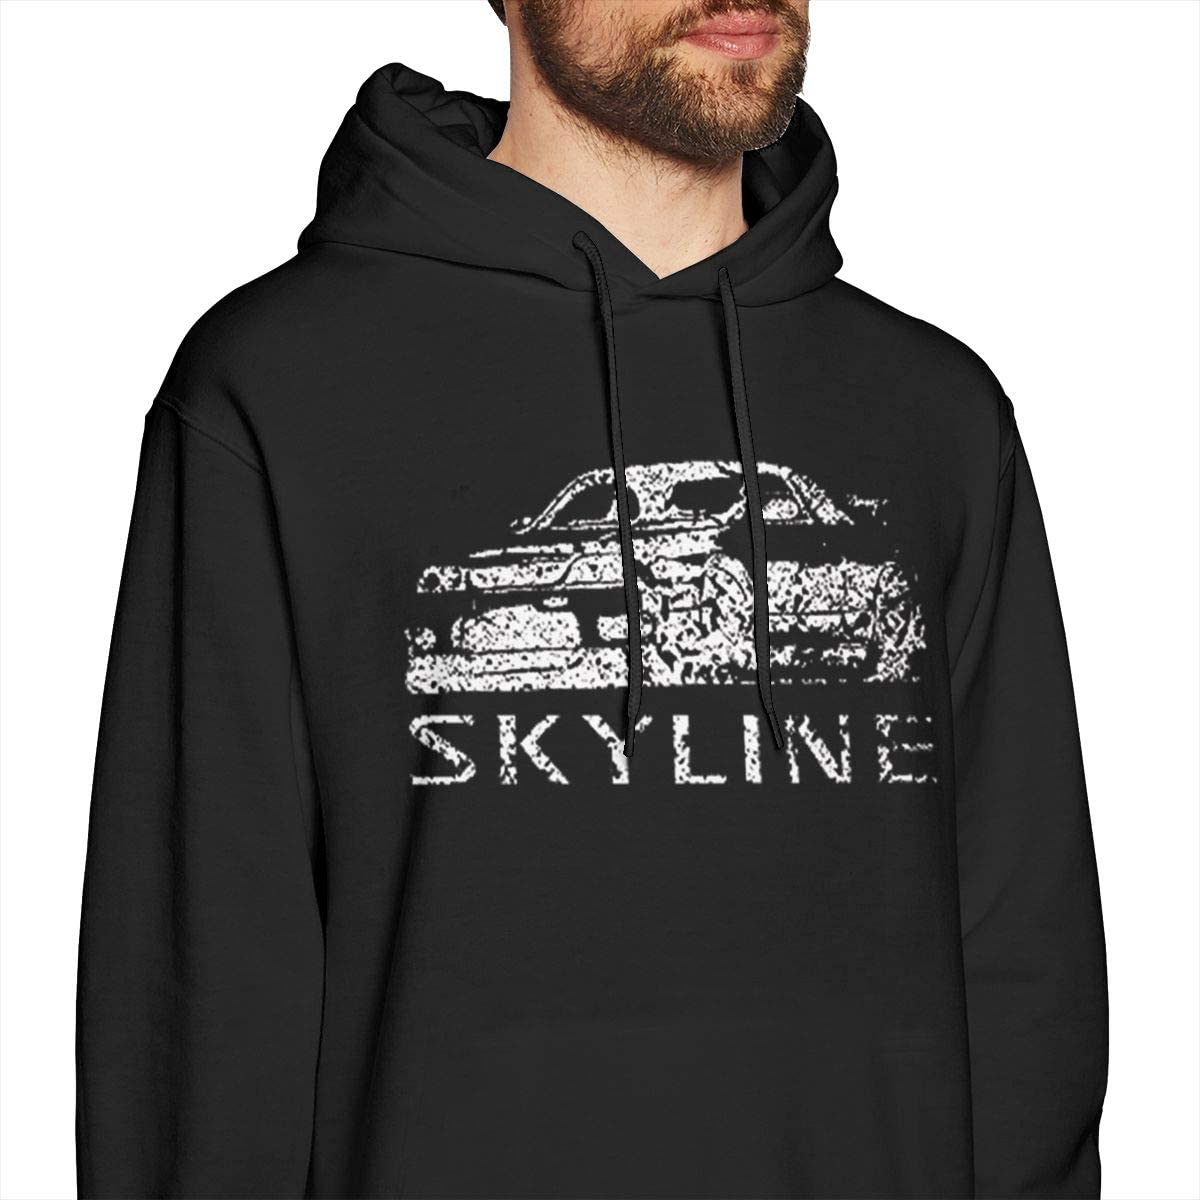 BambooPavilion Men Distressed Nissan Skyline R34 AWD Turbo Loose with Black Hoodie Sweatshirt Jacket Pullover Tops